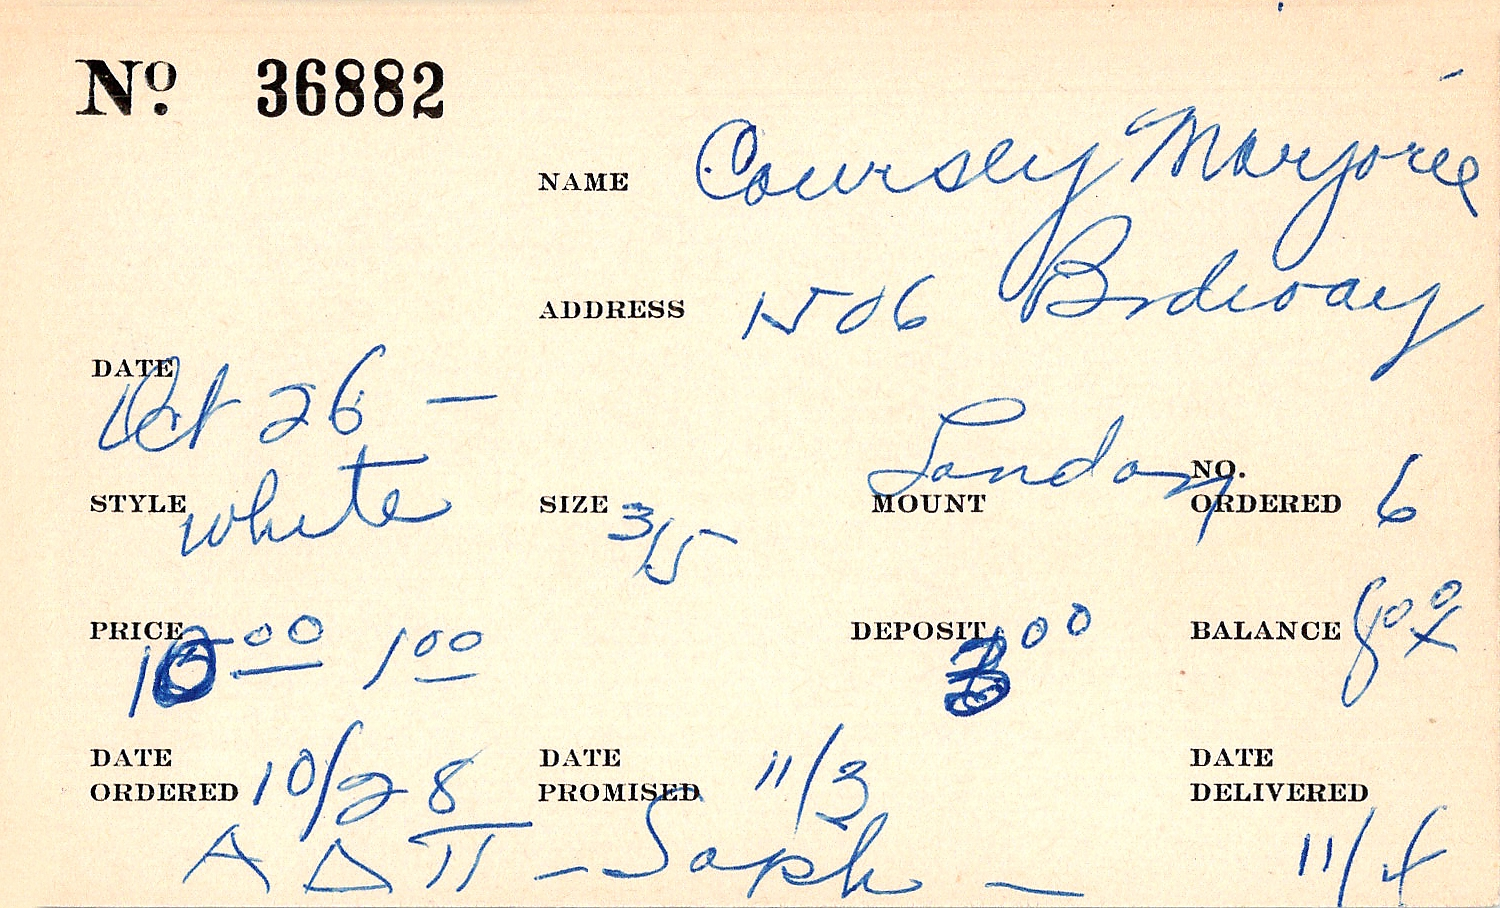 Index card for Marjorie Coursey